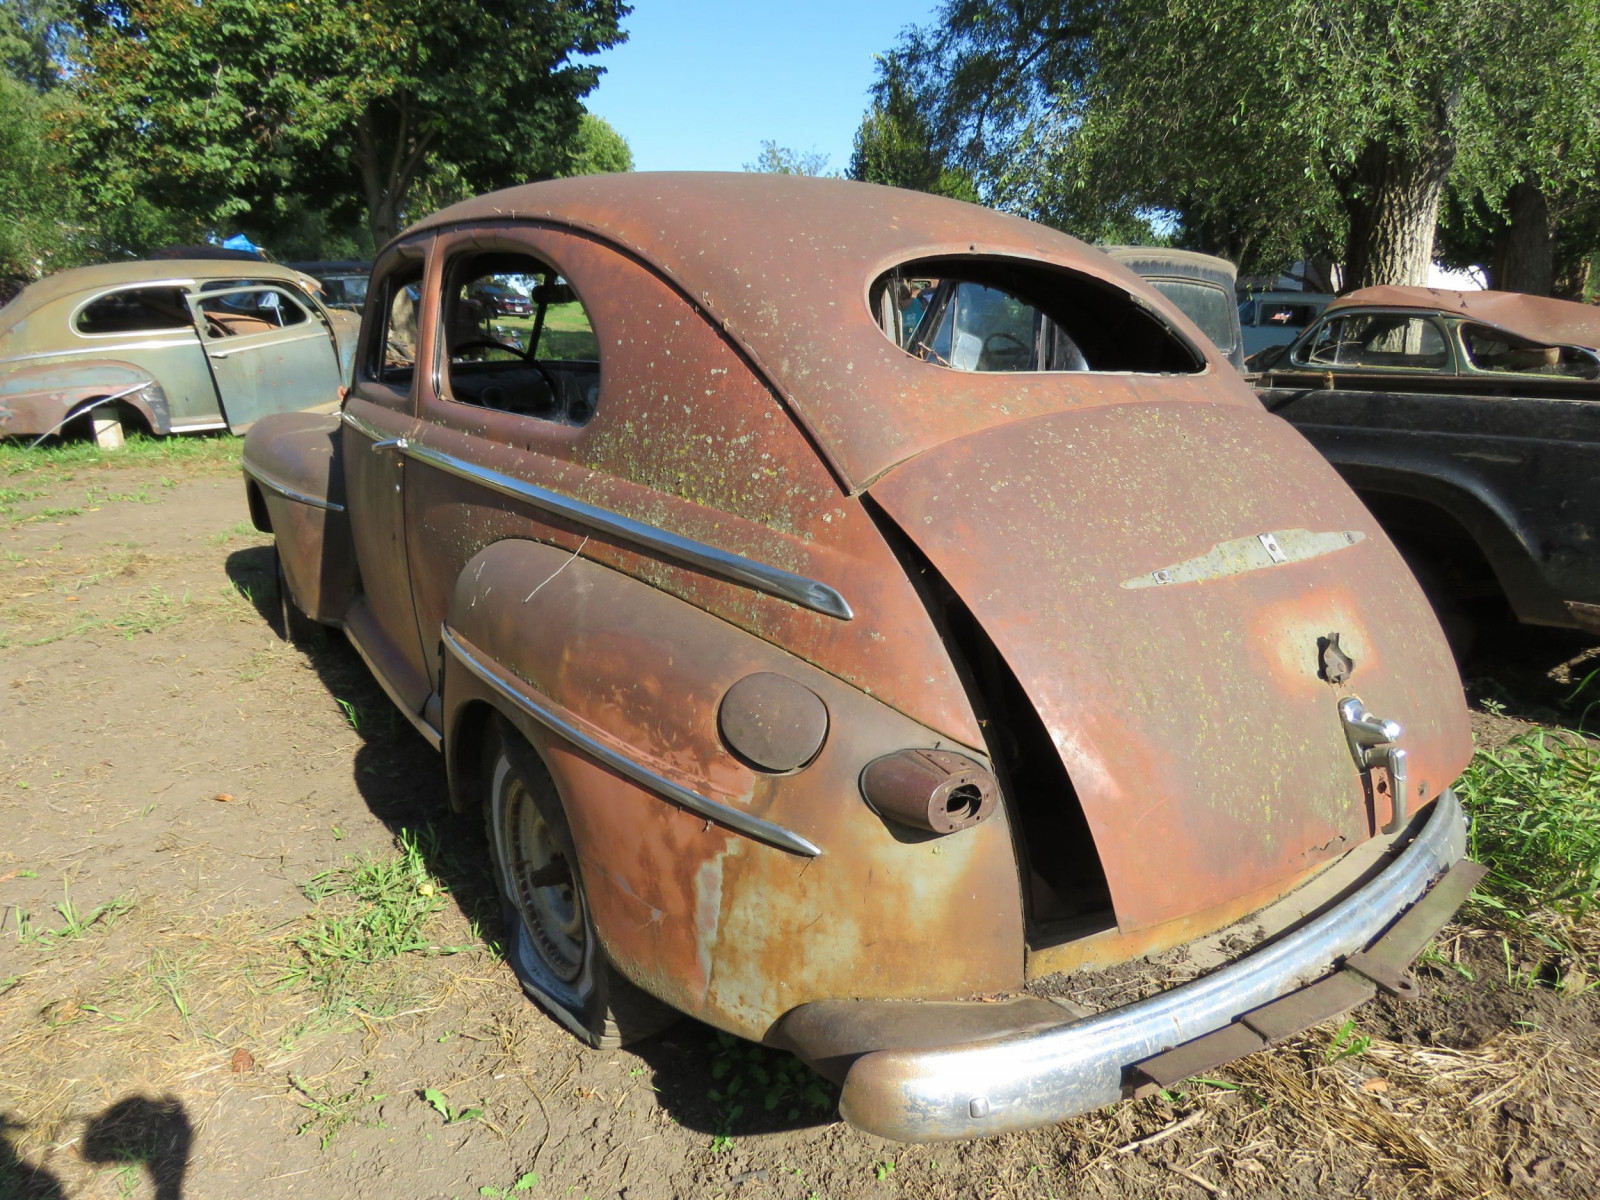 1947 Ford 2dr Sedan for Project or Parts - Image 4